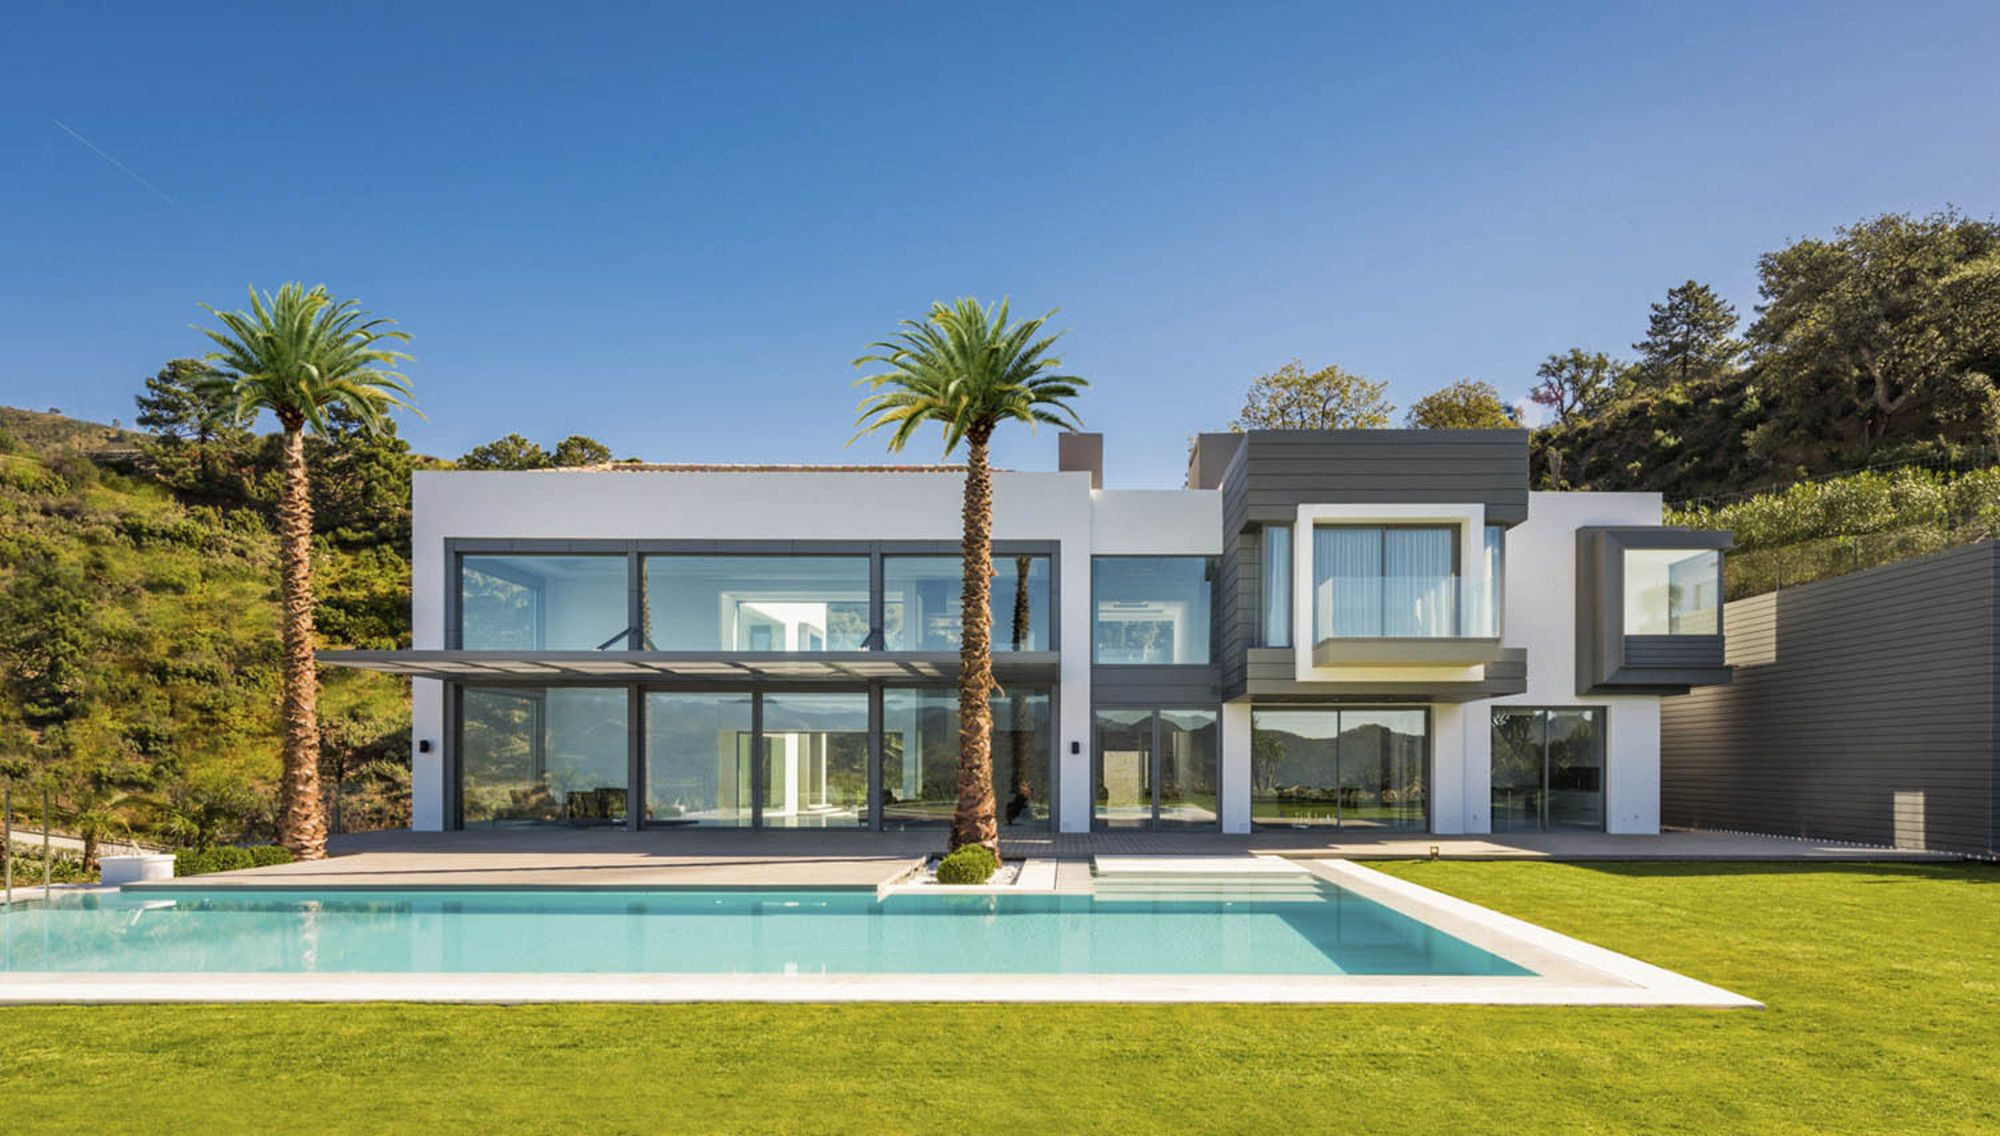 Brand New Modern Villa In La Zagaleta, Marbella, Spain For